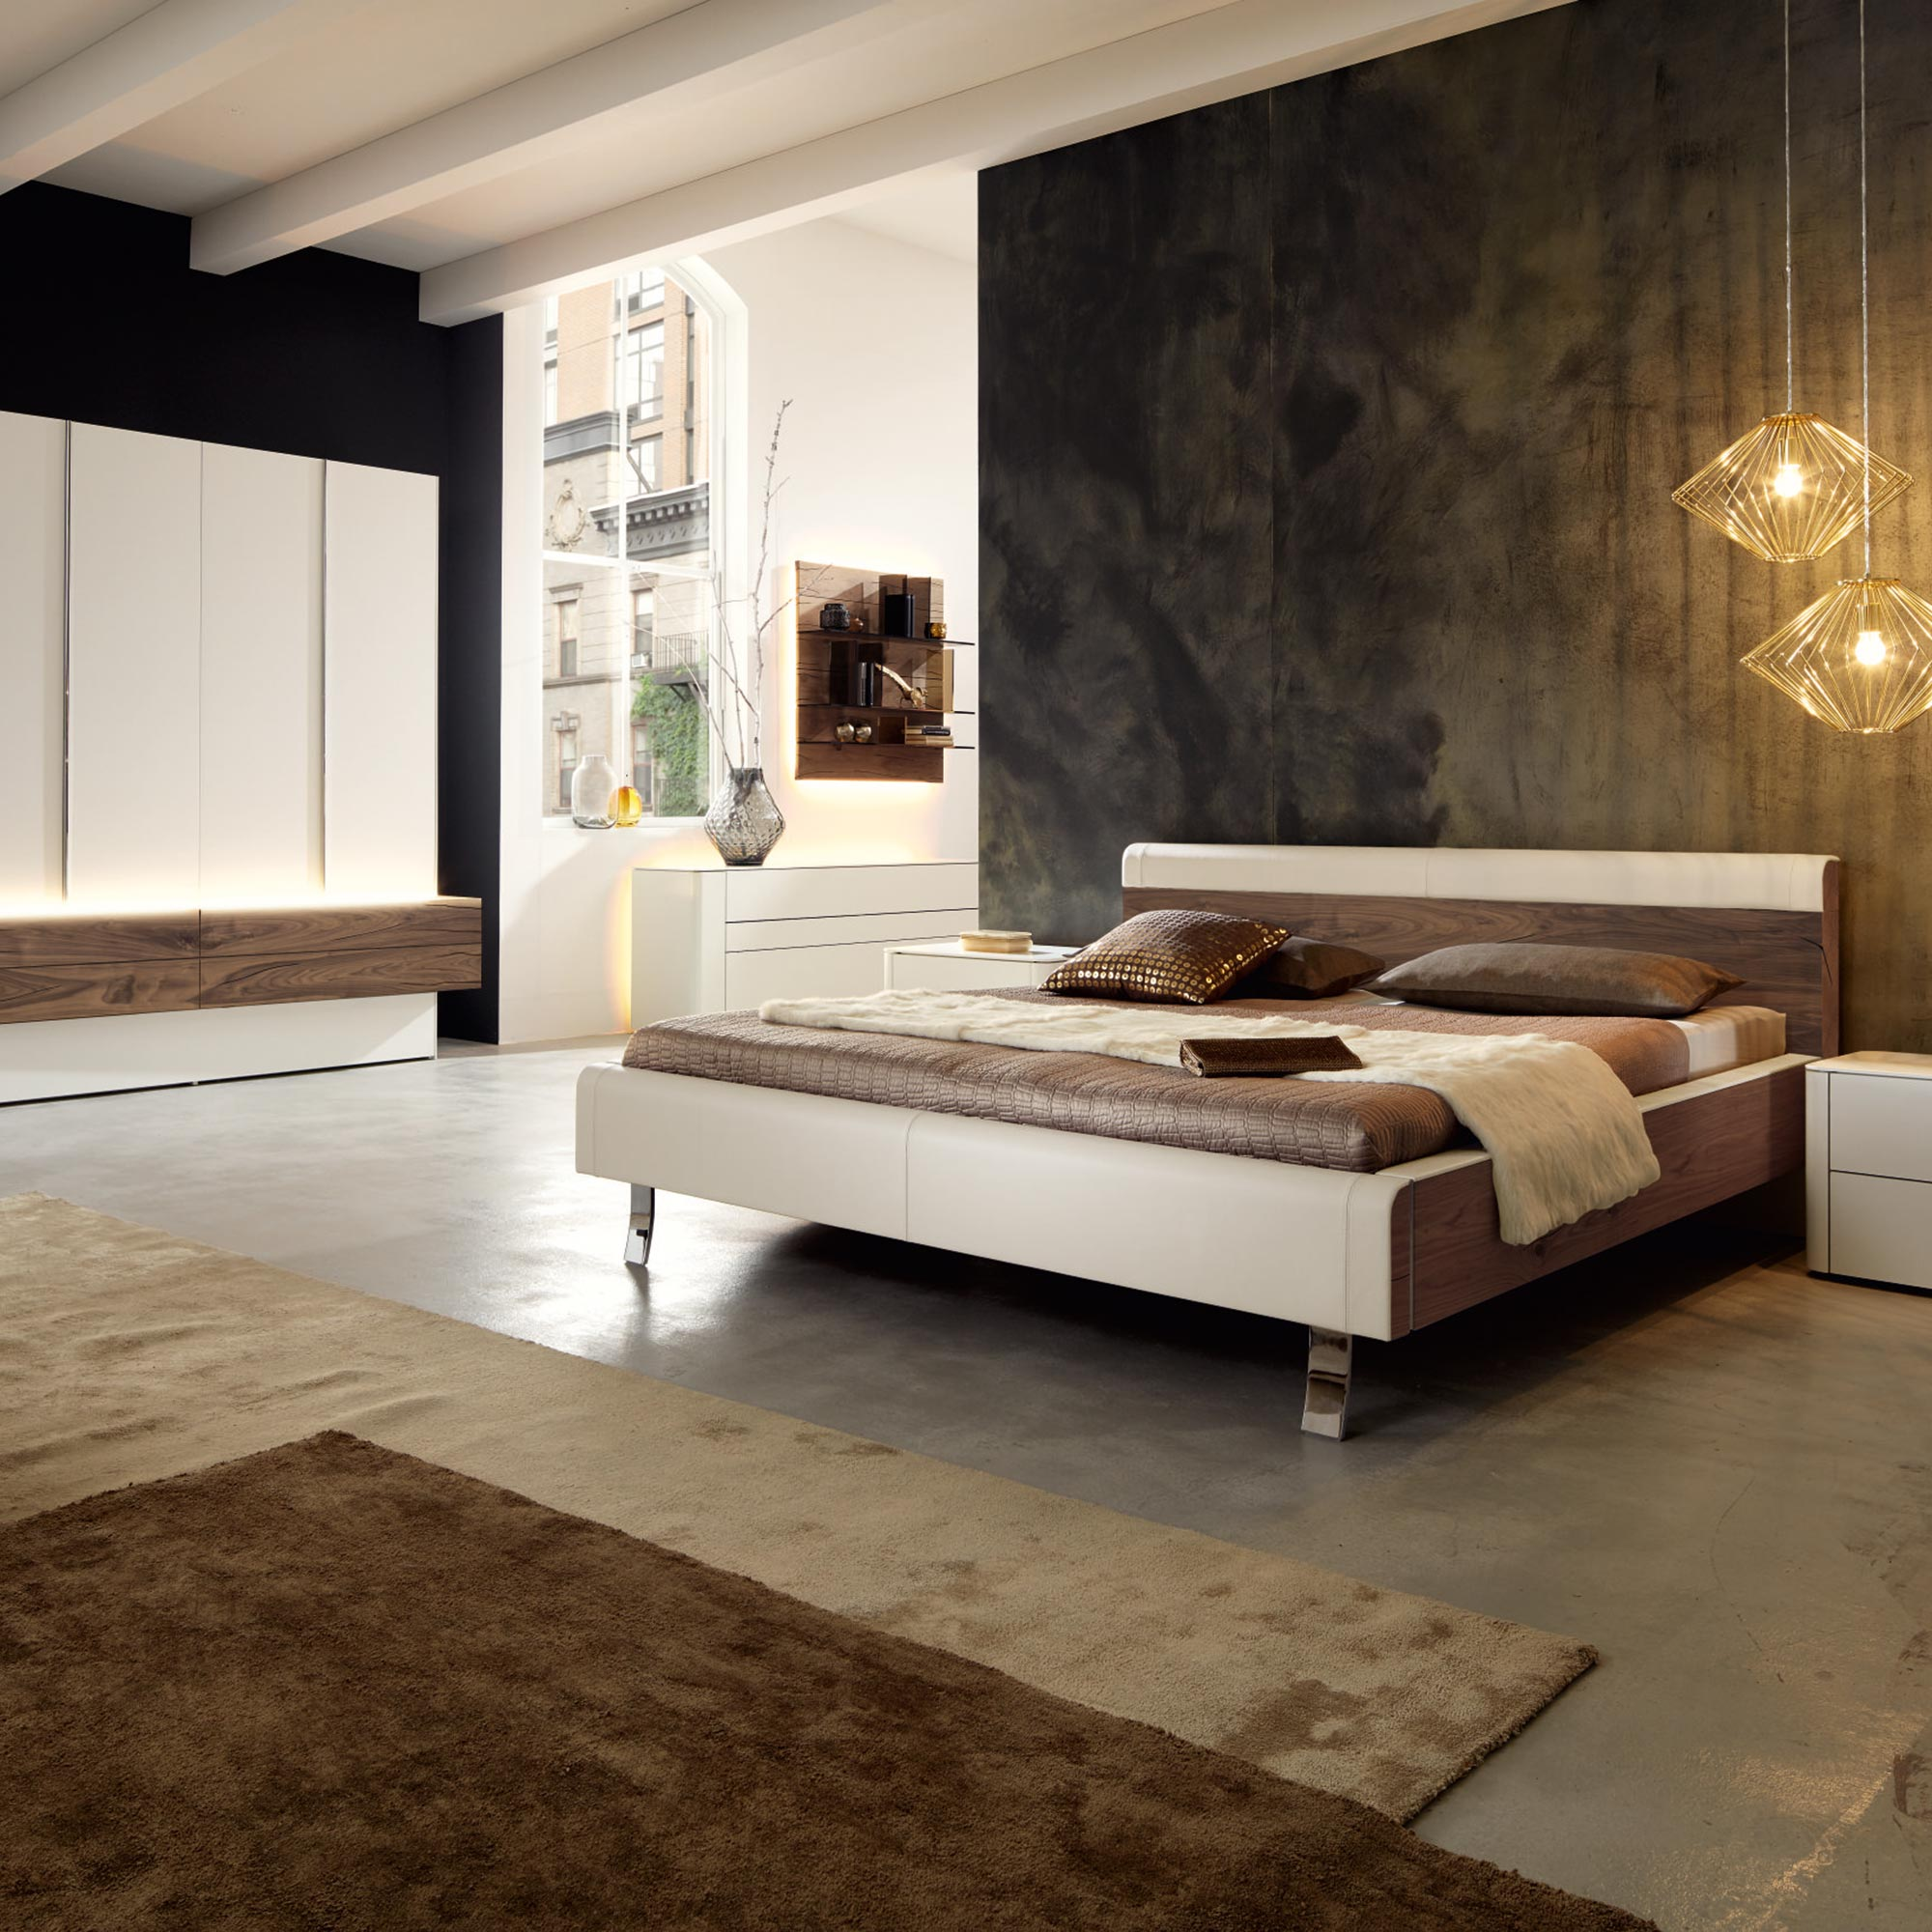 h lsta gentis schlafzimmer weiss mit akzent in nussbaum. Black Bedroom Furniture Sets. Home Design Ideas